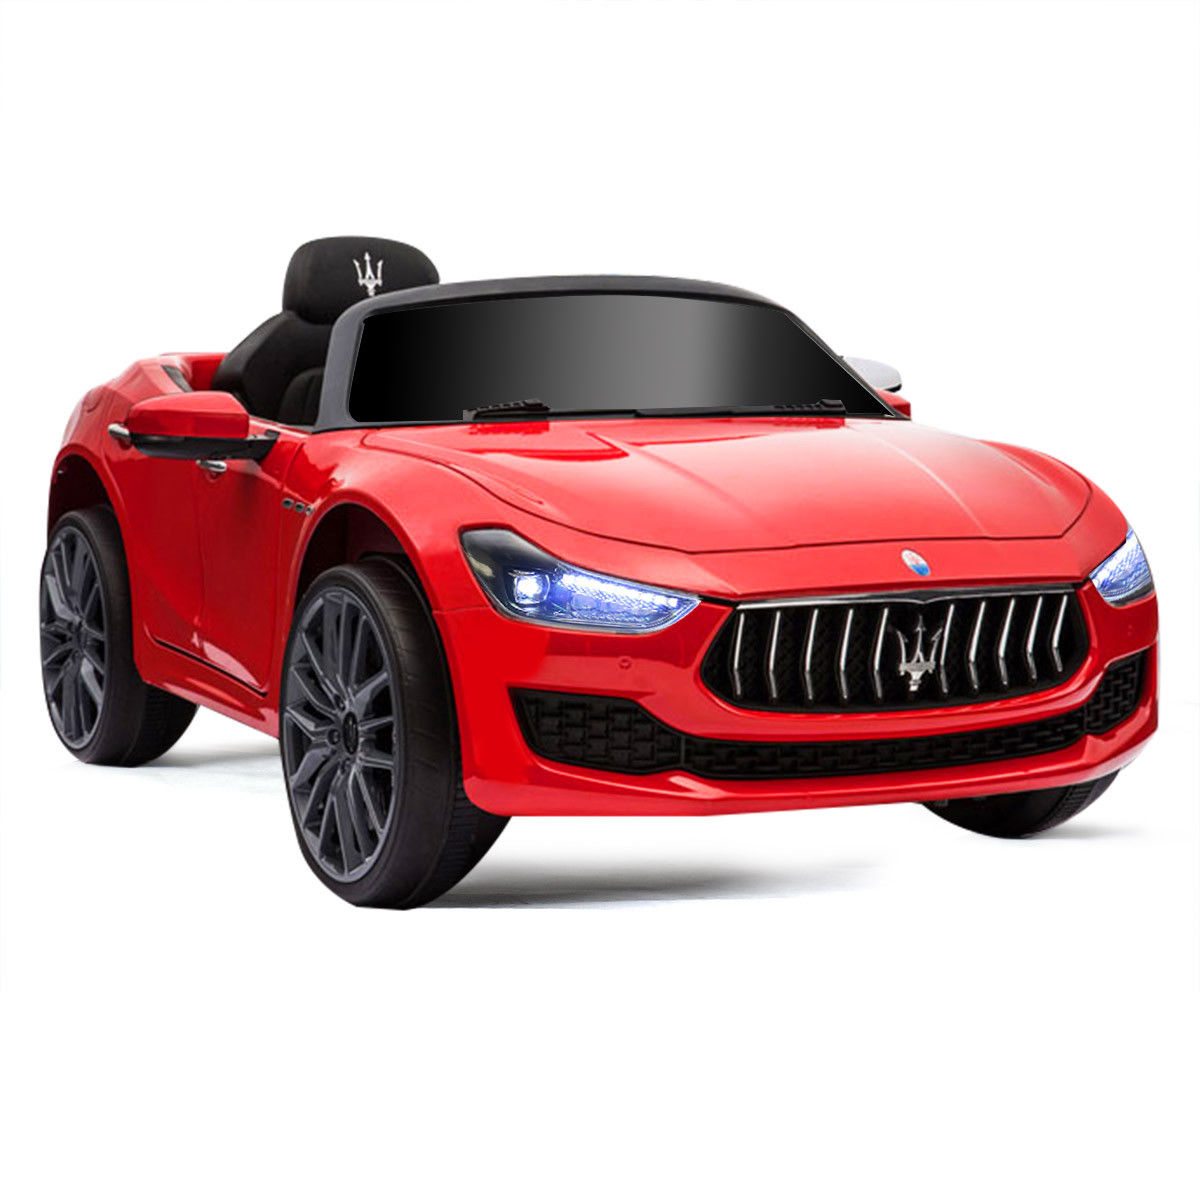 Gymax 12V Maserati Licensed Kids Ride on Car w/ RC Remote Control Led Lights MP3 Red